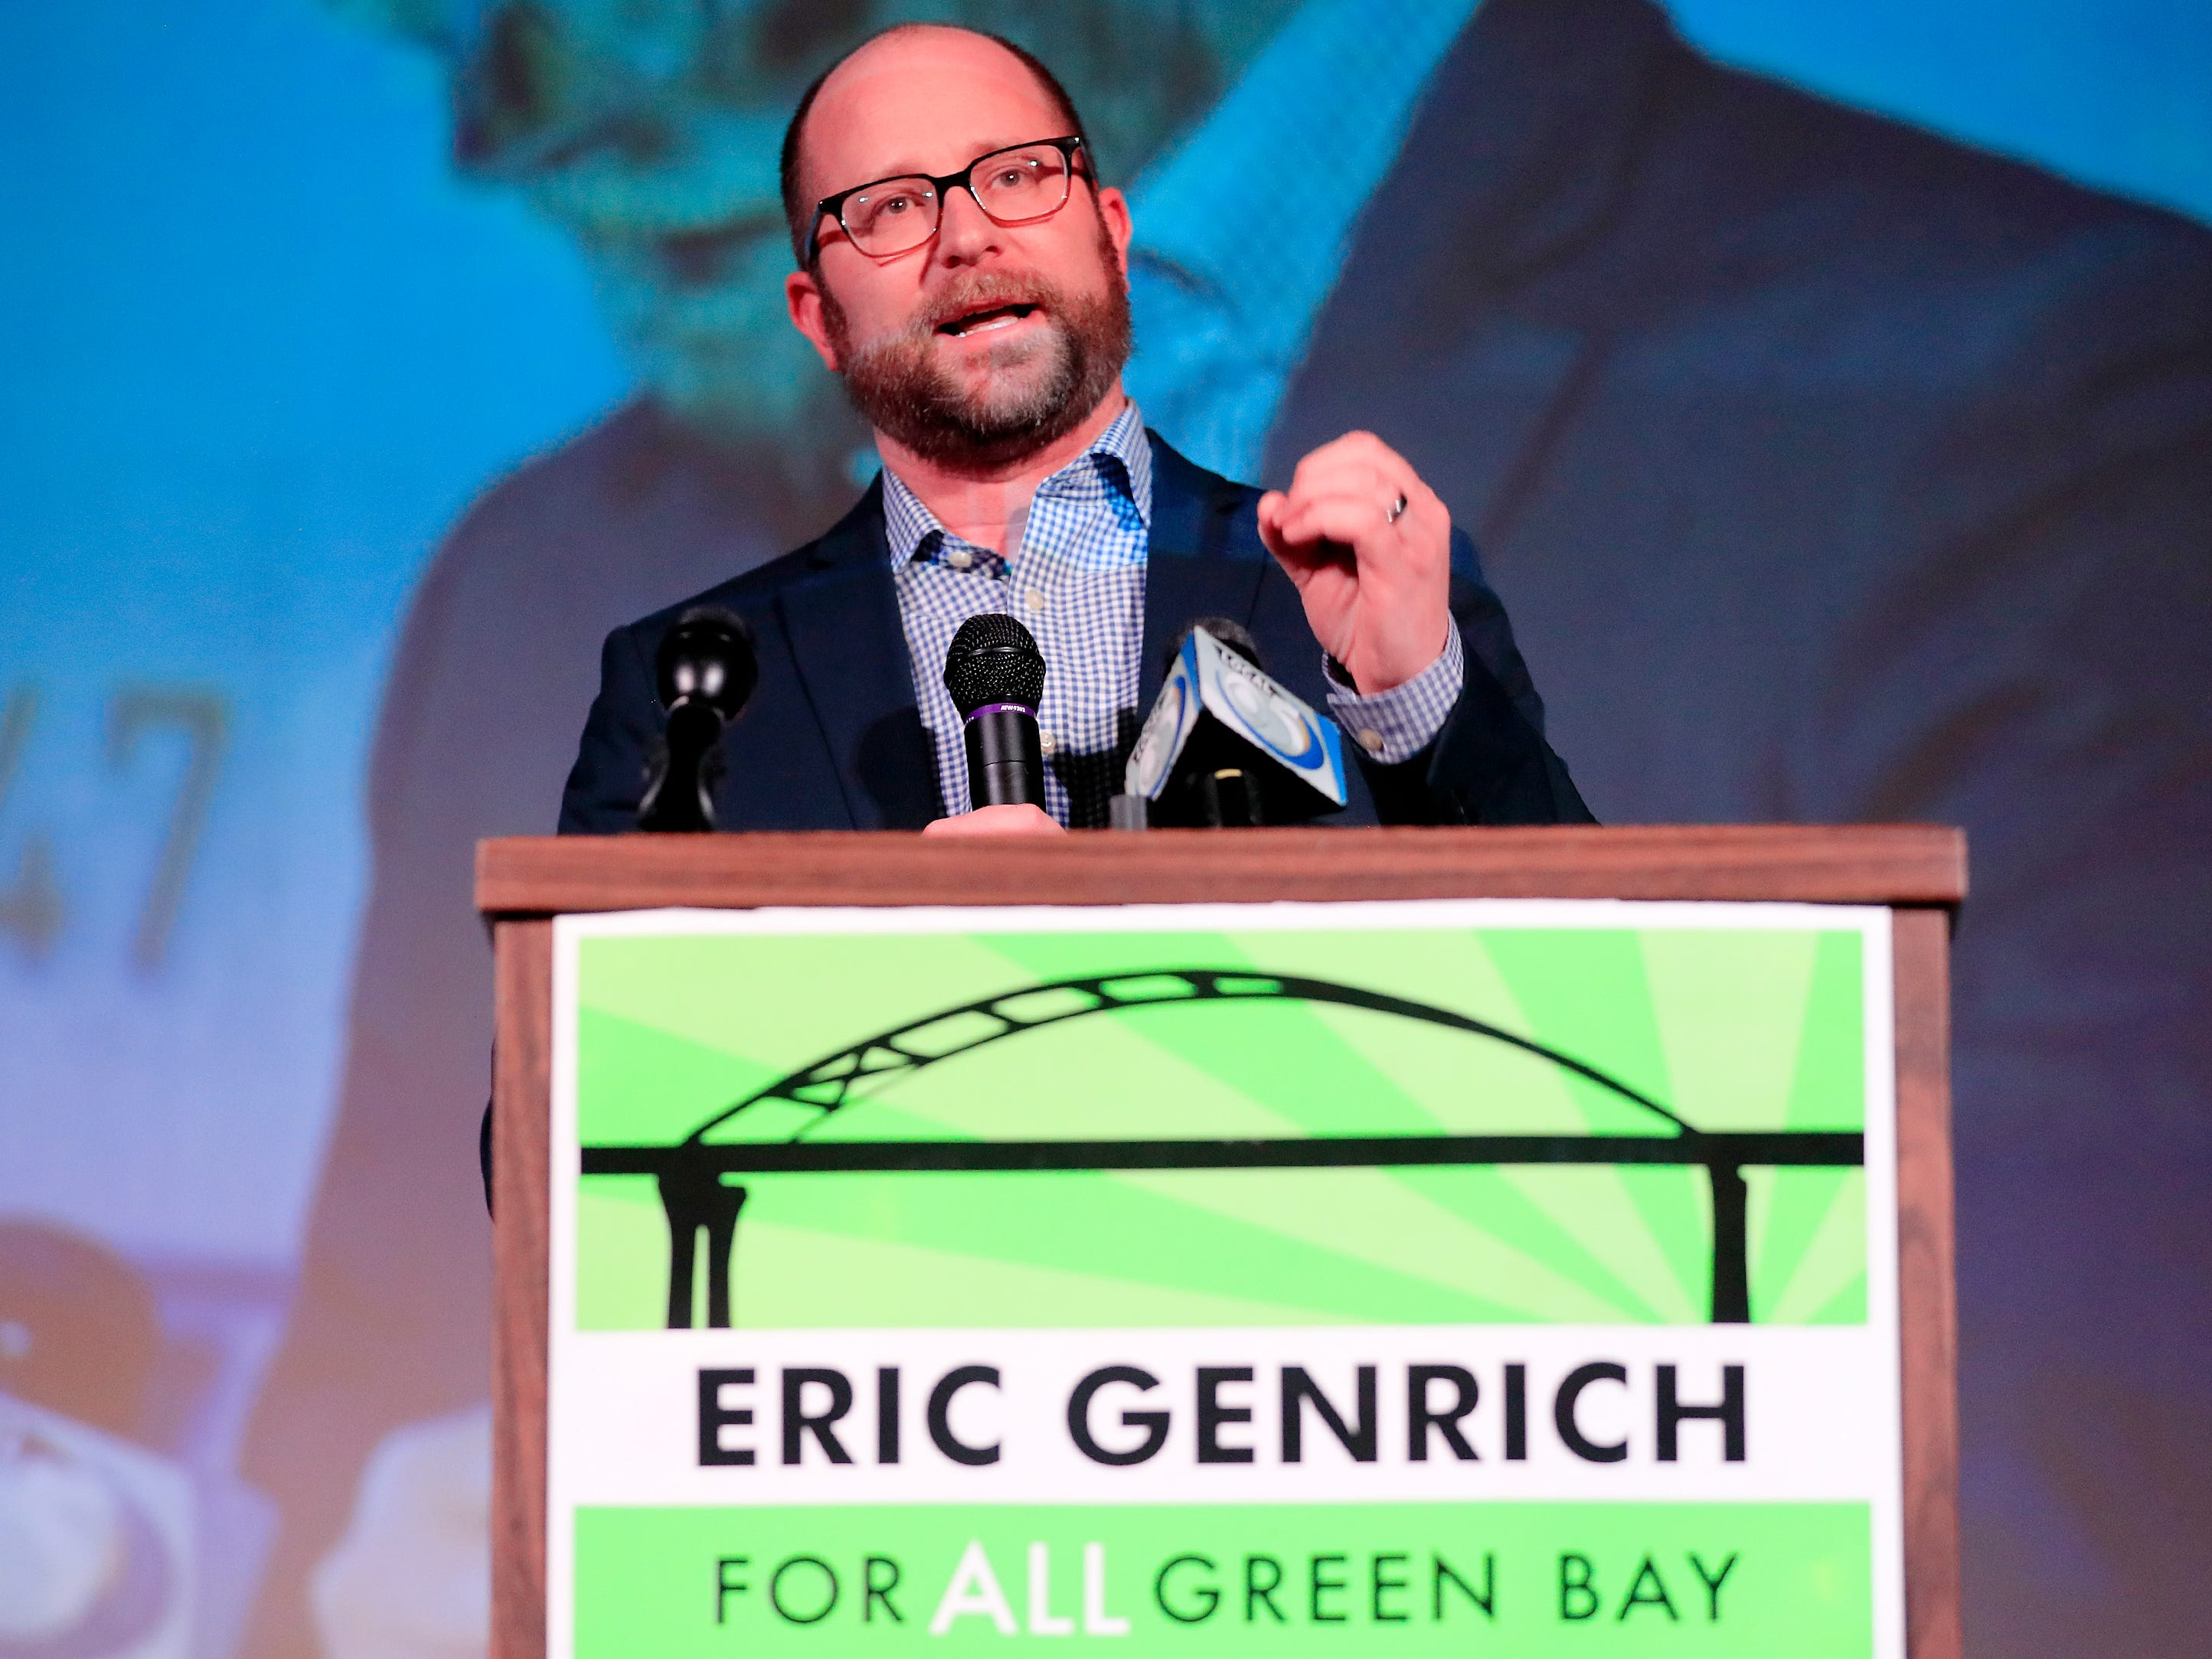 Green Bay Mayor-elect Eric Genrich speaks to his supporters at the Tarlton Theater on Tuesday, April 2, 2019 in Green Bay, Wis.